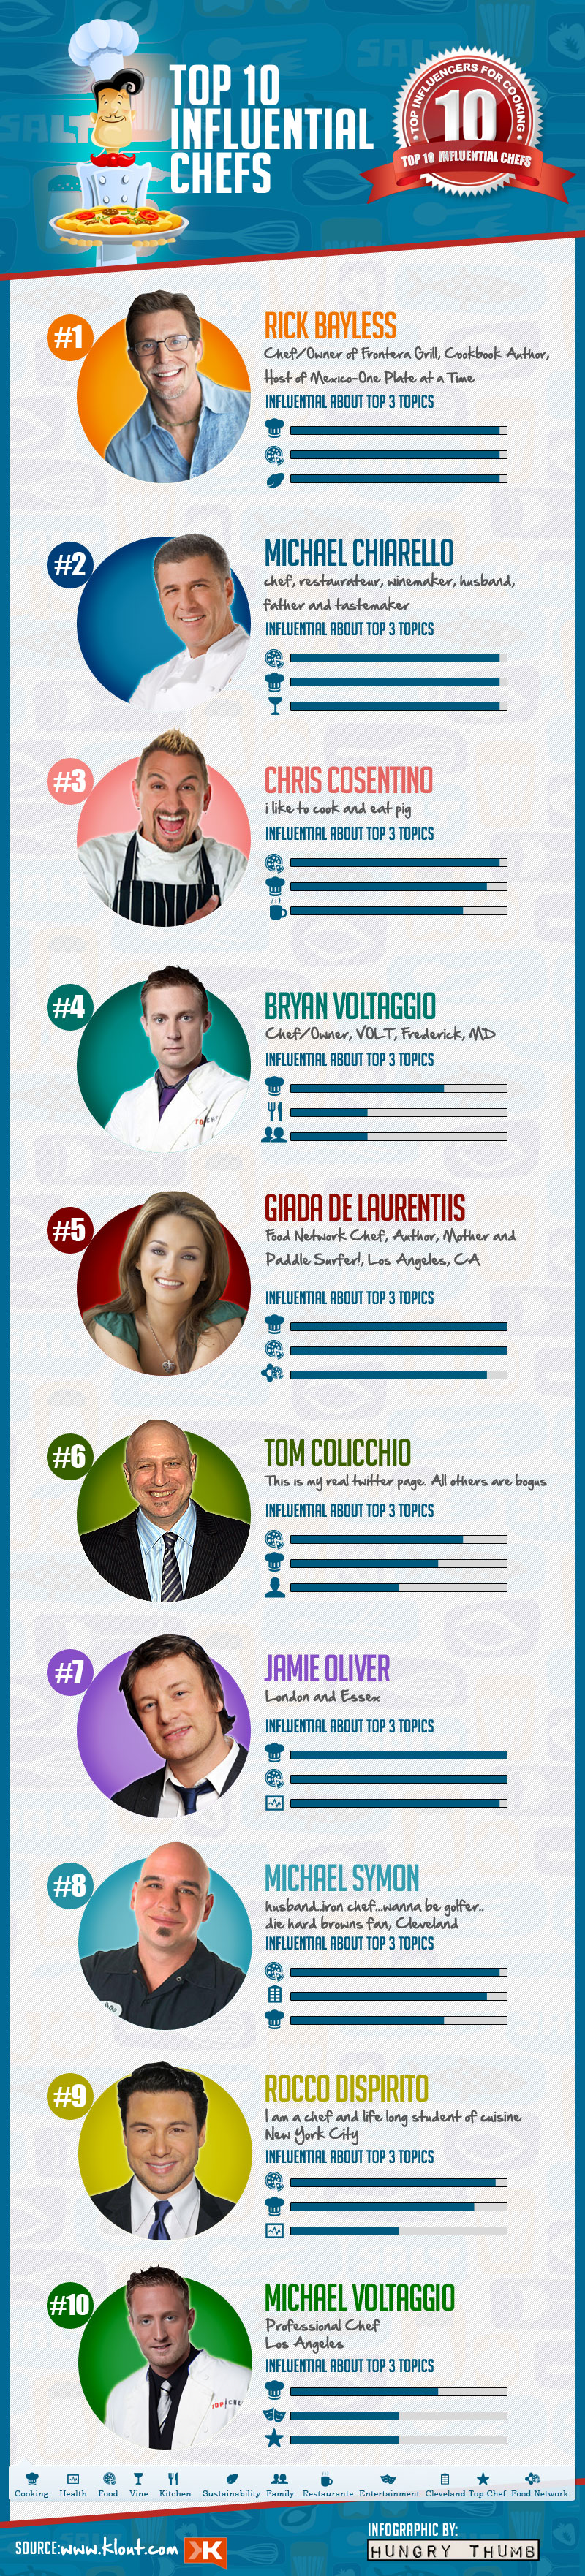 Top-10-Influential-Chefs-infographic